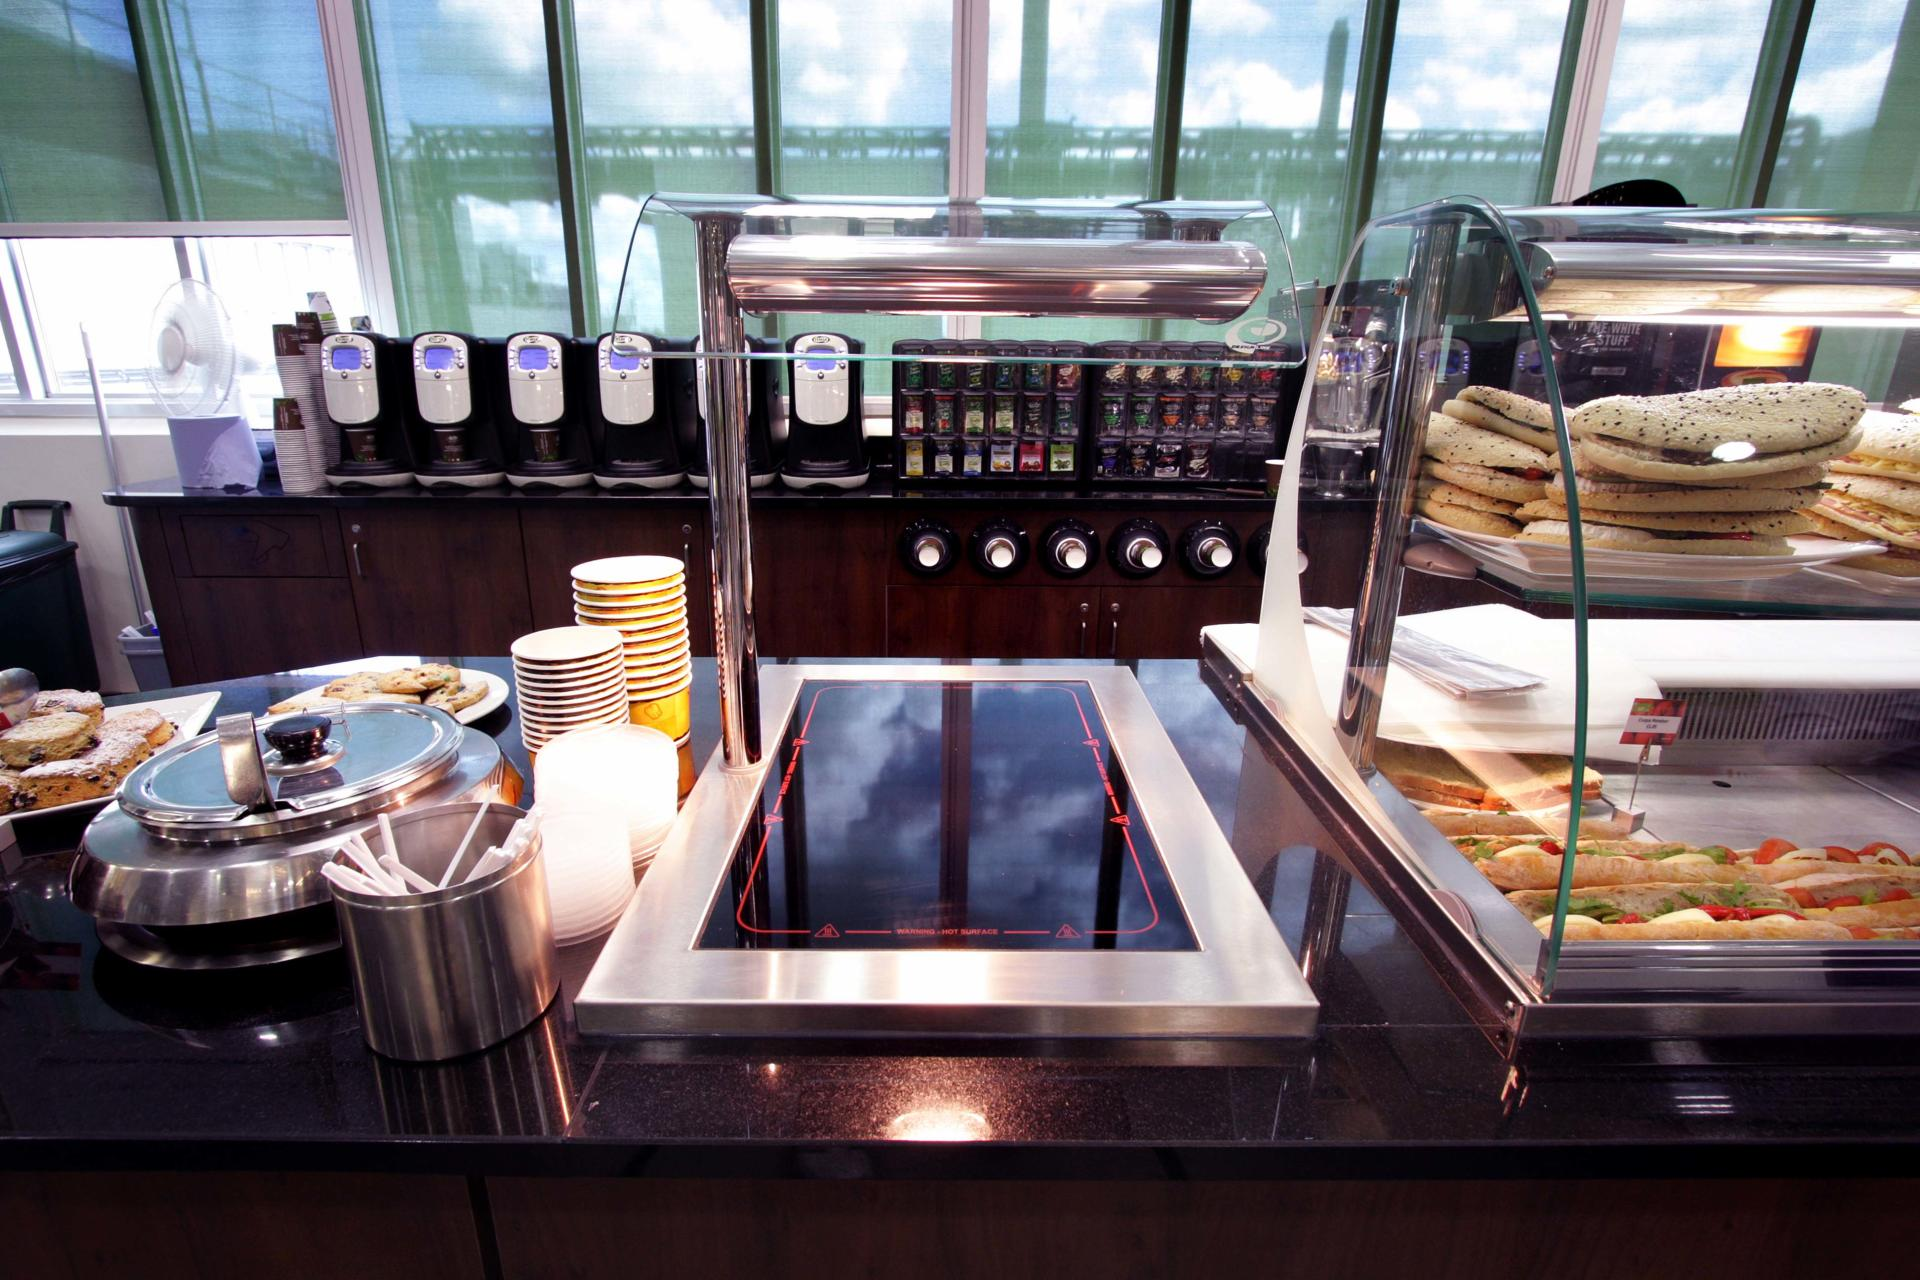 Mars-Sodexo-Slough-Staff-Severy-Front-of-house-Servery-Food-Display-spacecatering_3